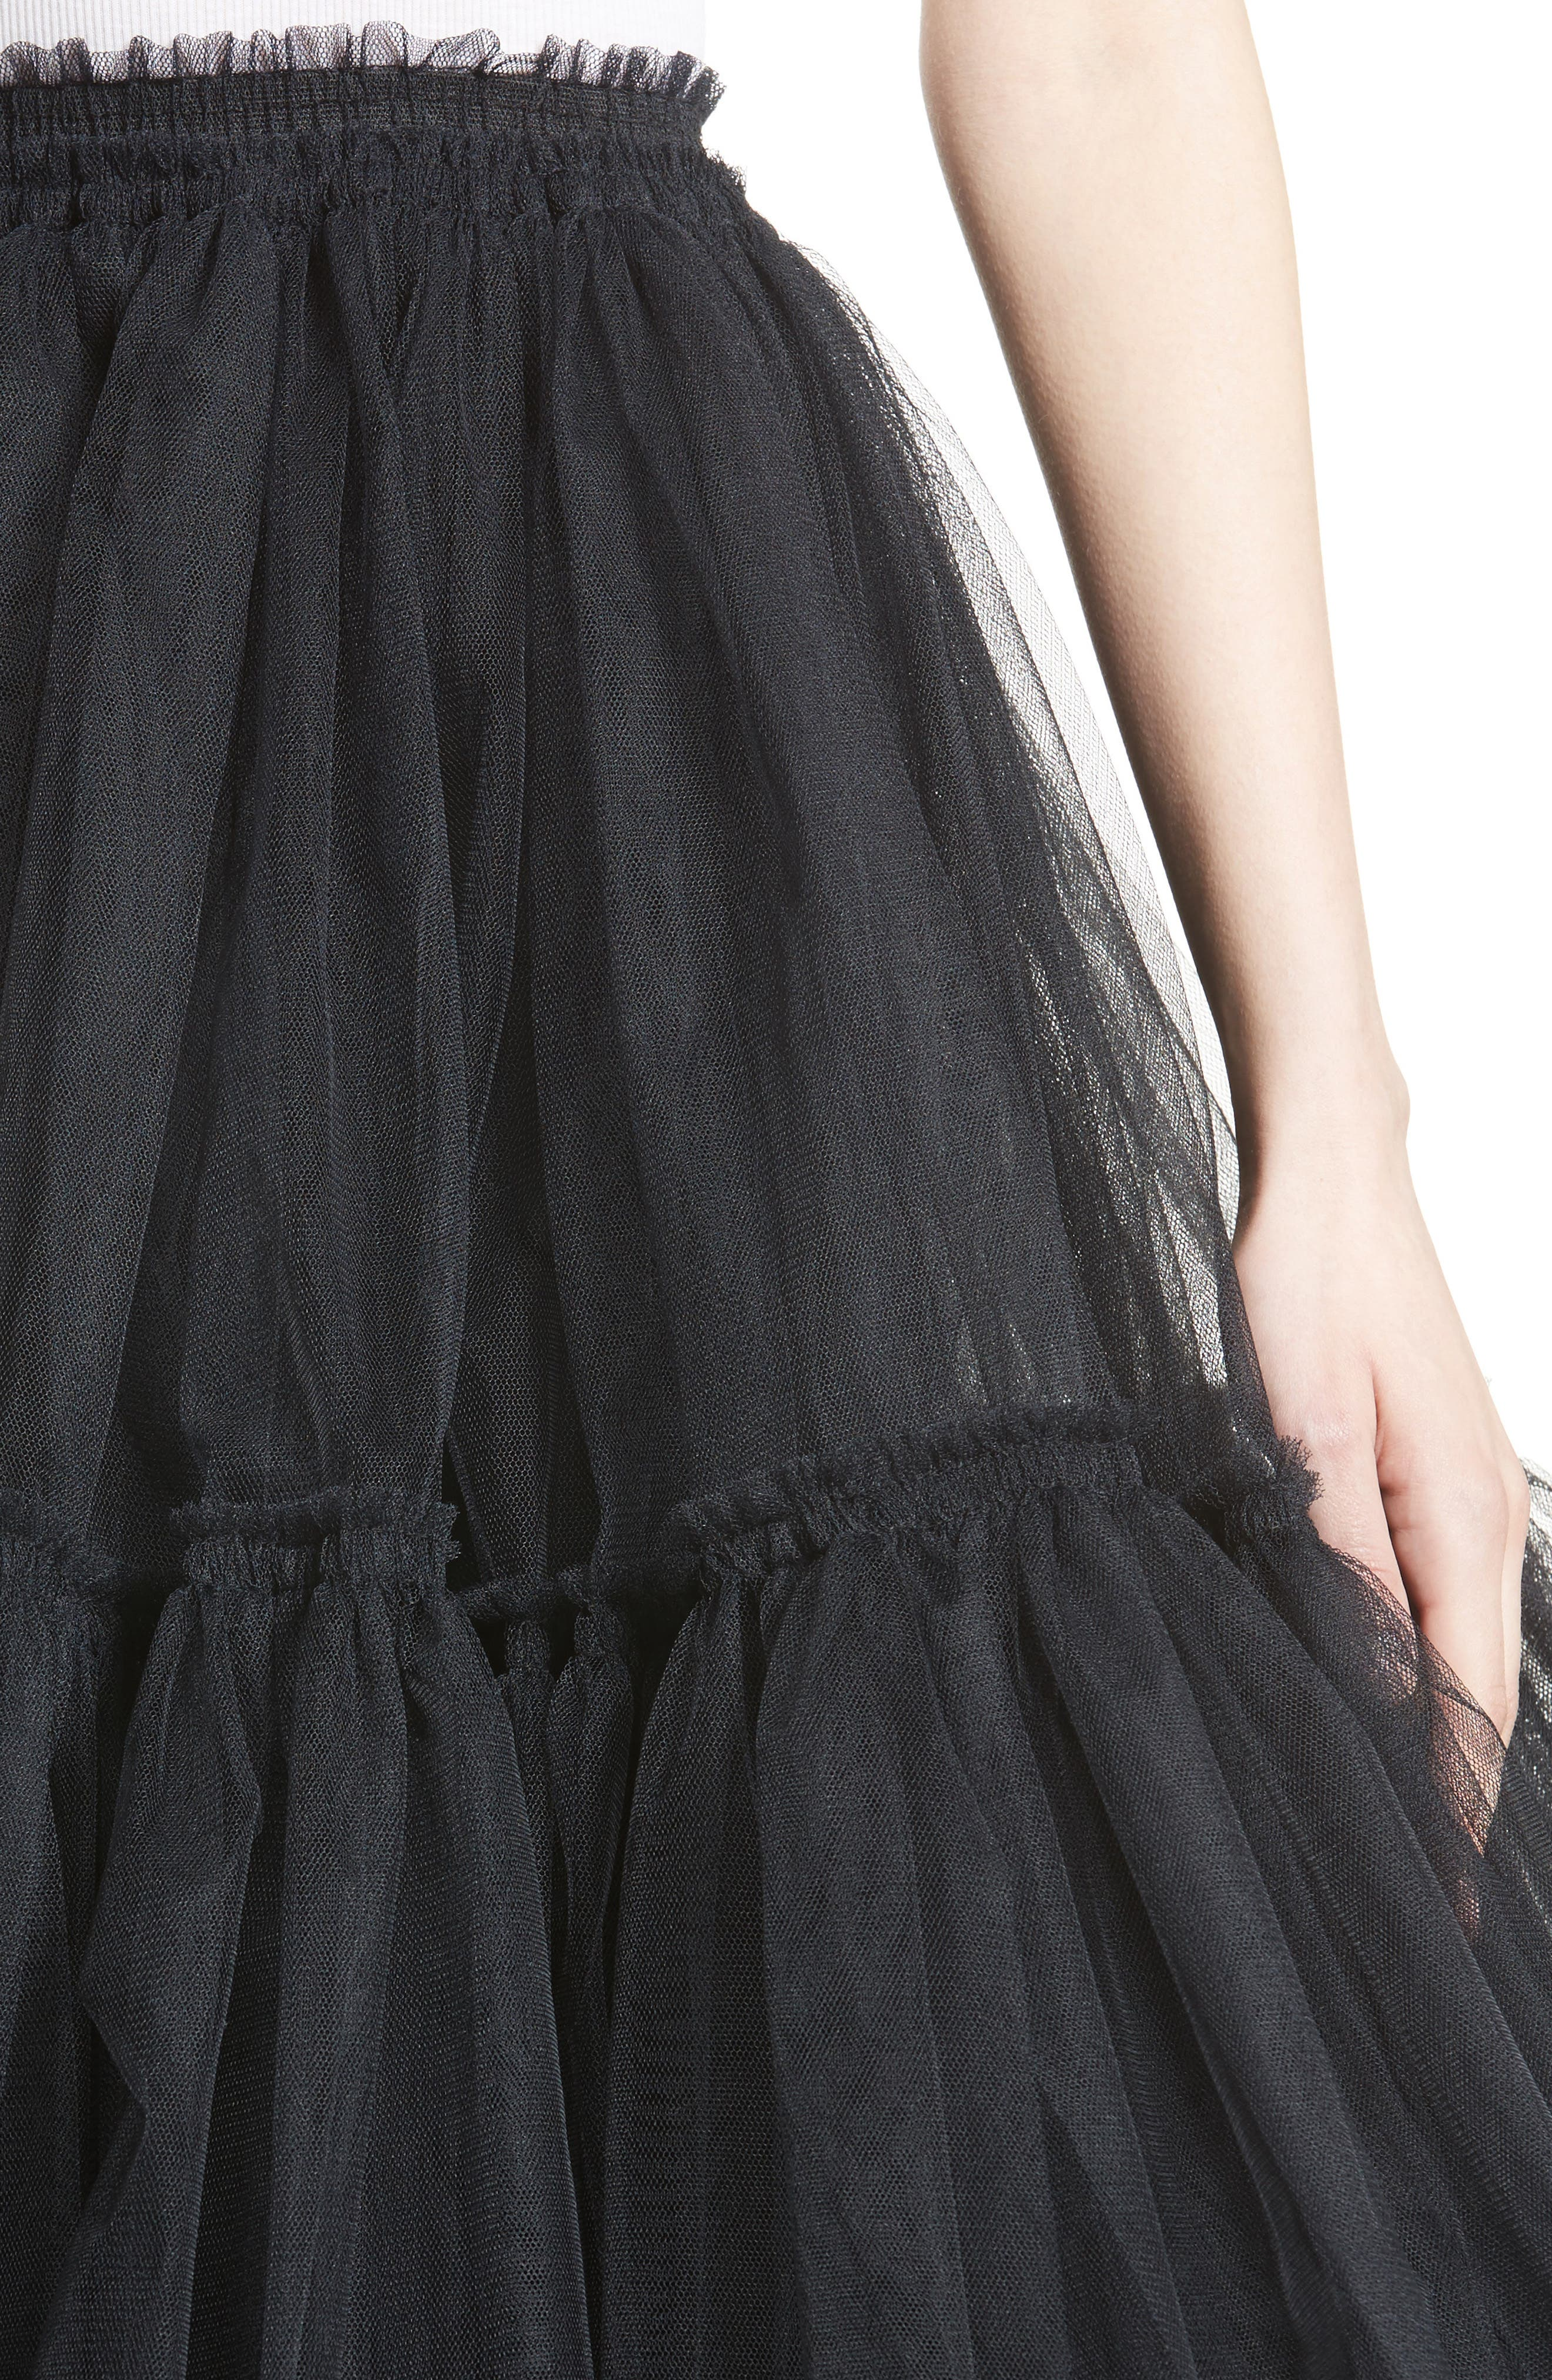 Gathered Tulle Skirt,                             Alternate thumbnail 4, color,                             001